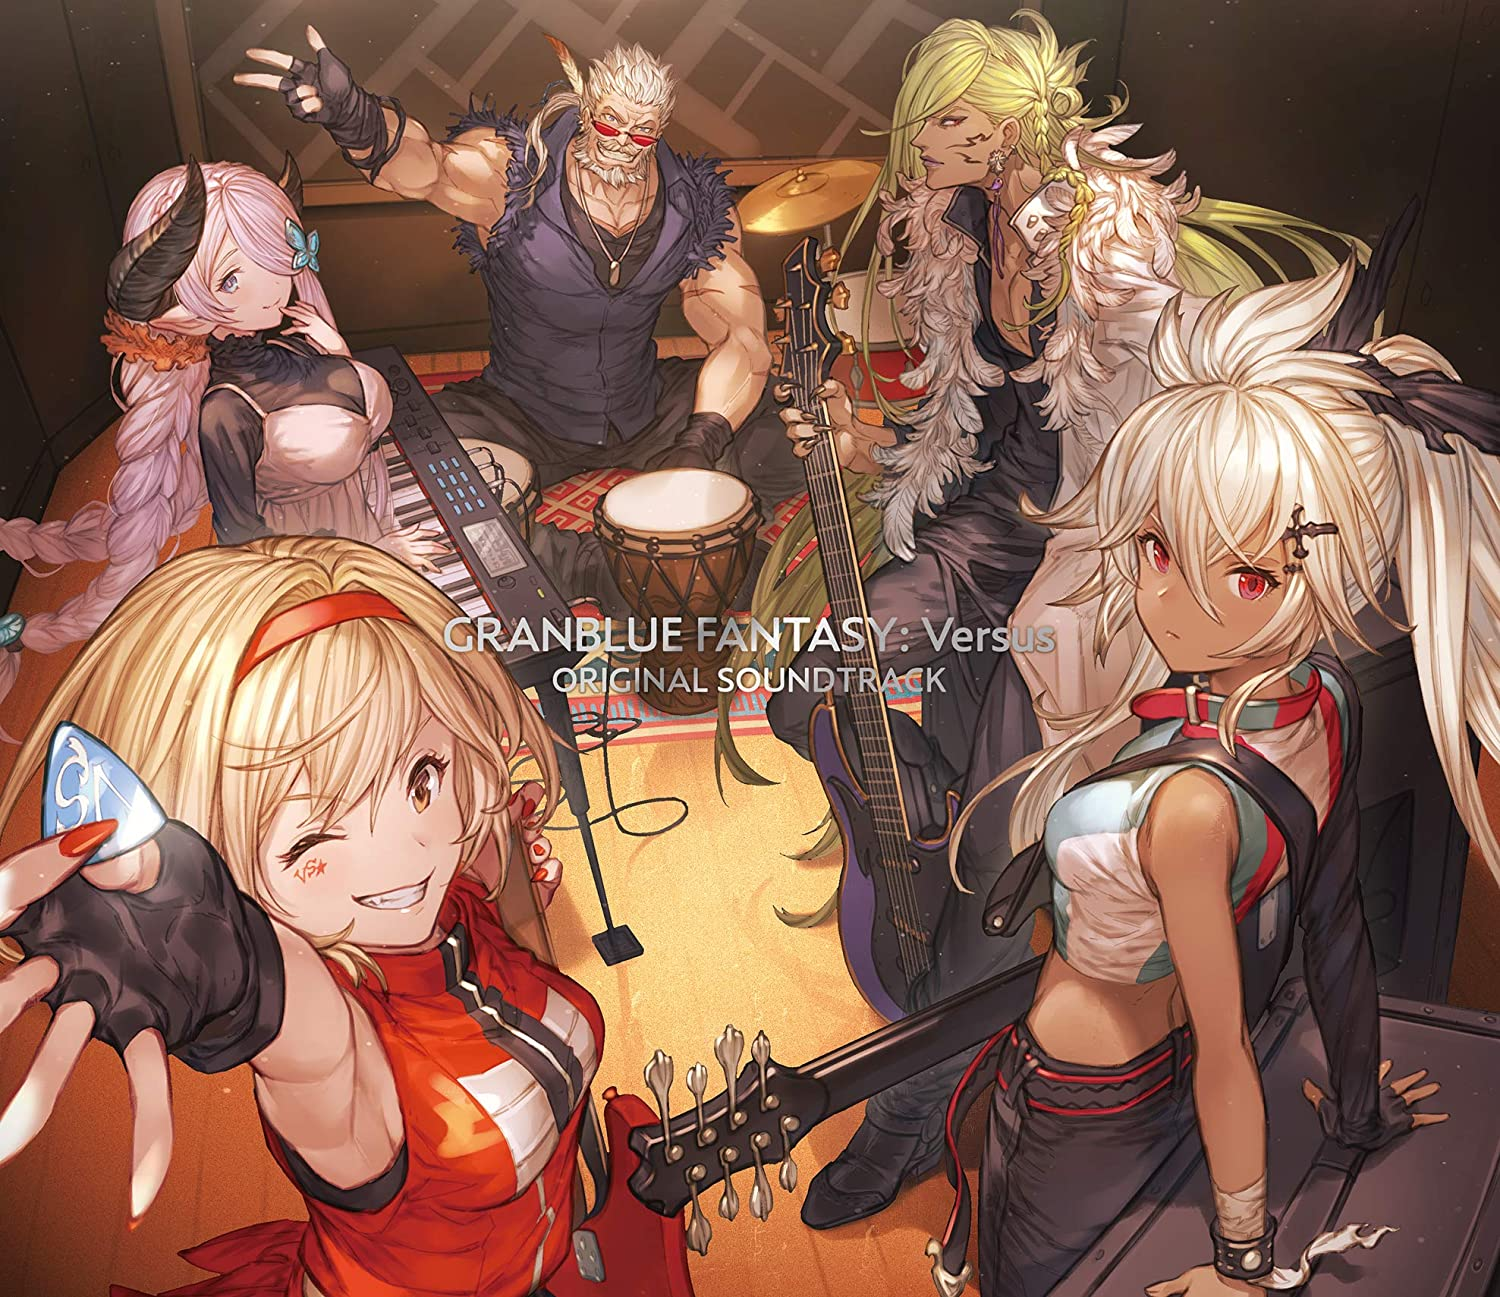 Granblue Fantasy:Versus ORIGINAL SOUNDTRACK)